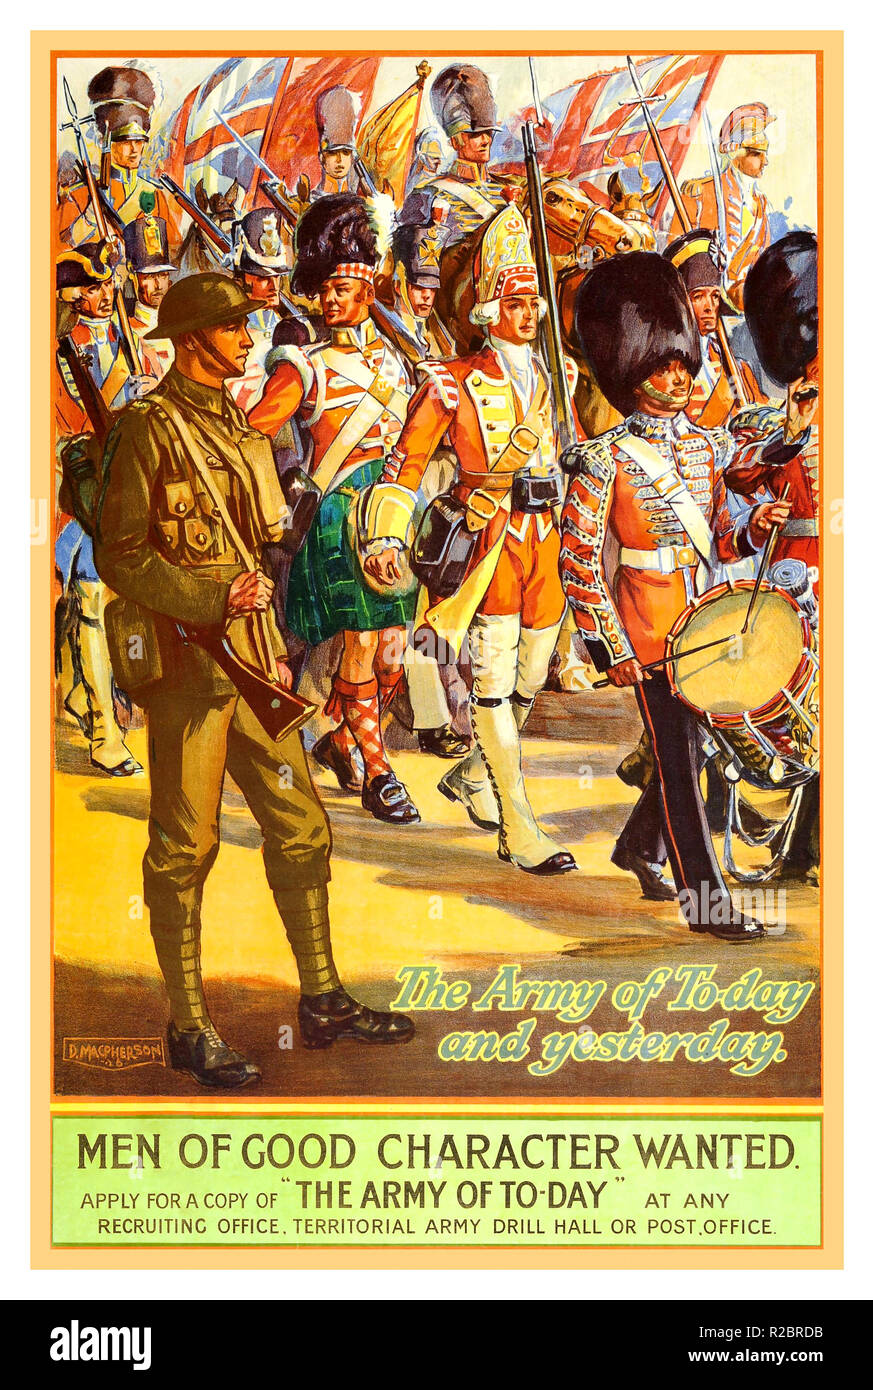 Vintage WW1 propaganda poster 1913 British Army Recruitment Poster illustrating Great Britain Armies in uniform marching back through history.. The Army of Today and Yesterday.. 'men of good character wanted'     'The Army of Today' Stock Photo